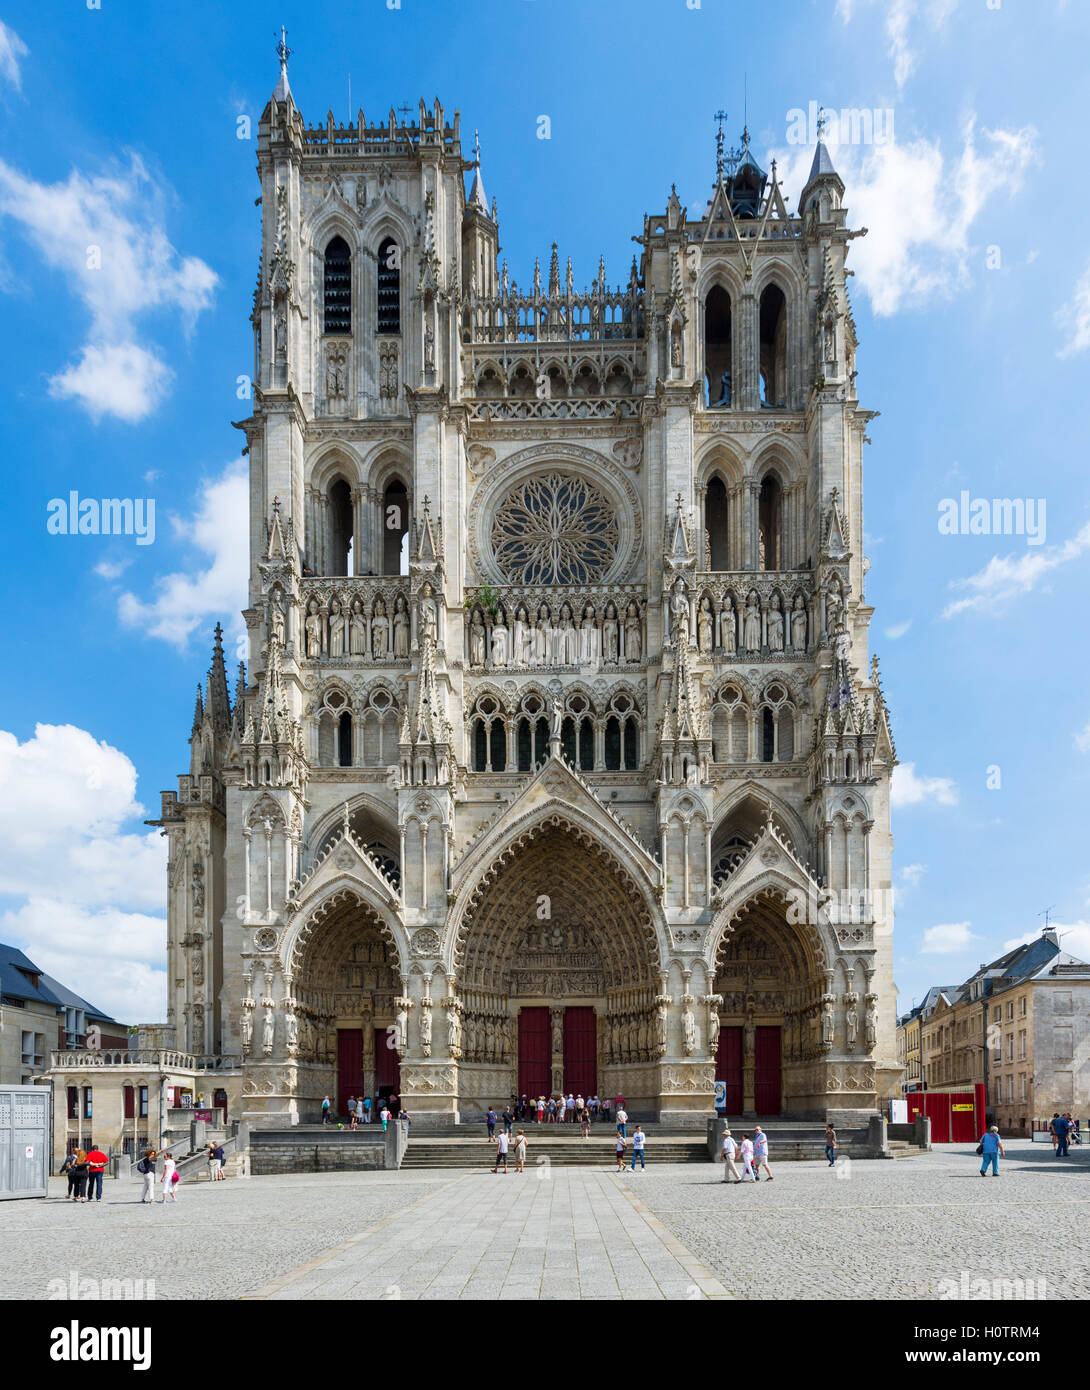 The west front of Amiens Cathedral (Cathédrale Notre-Dame d'Amiens), Amiens, Picardy, France Stock Photo